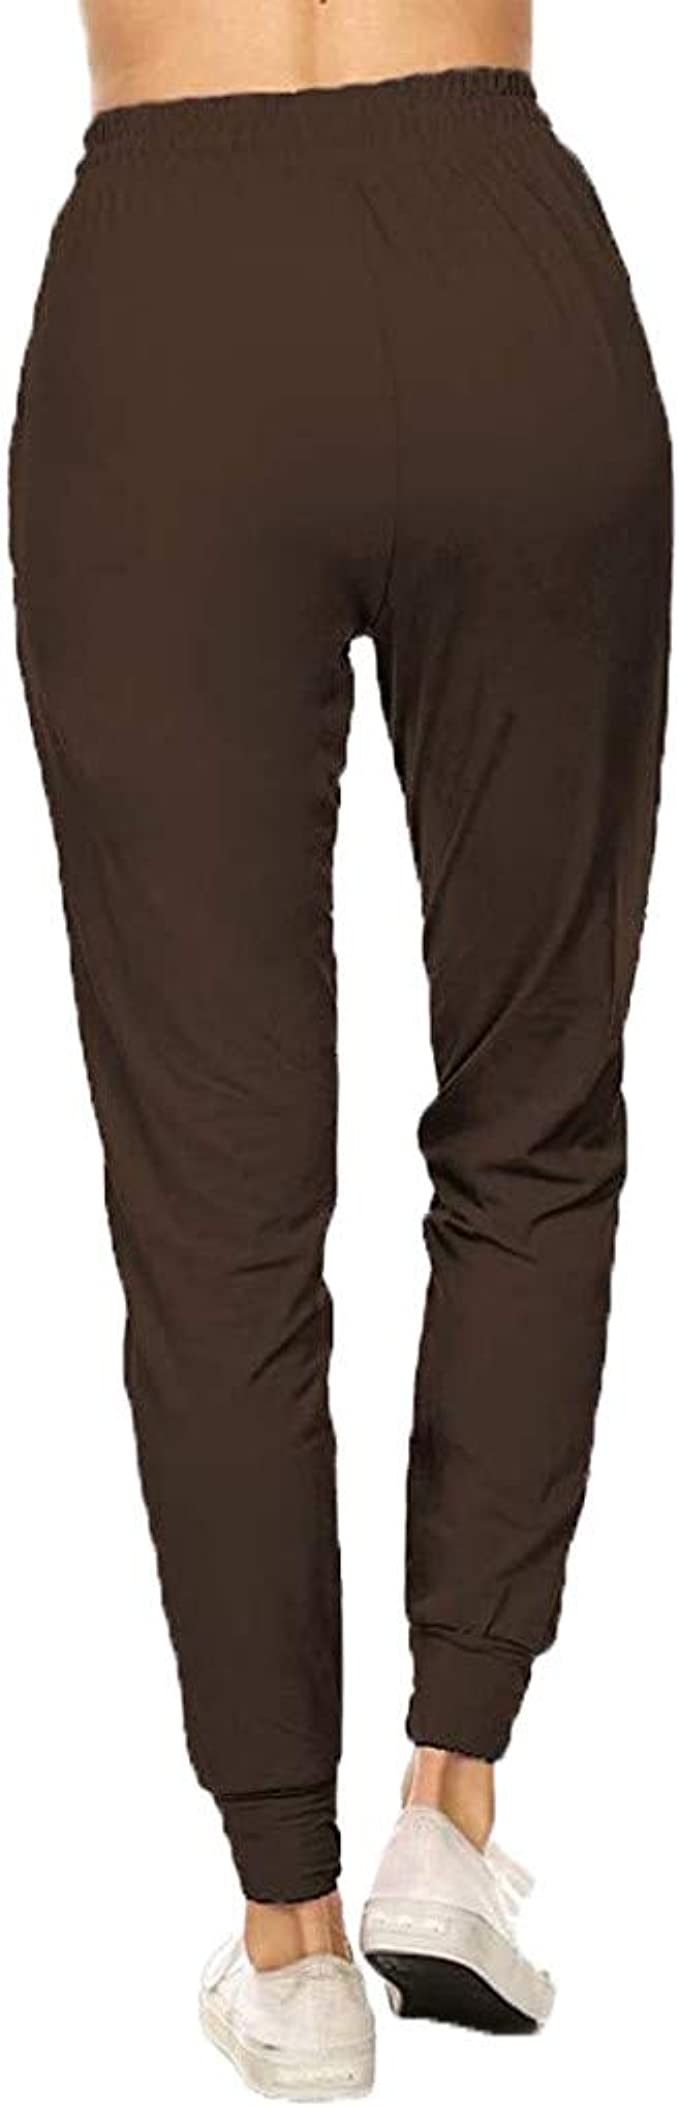 Hessimy Womens Active Yoga Sweatpants Workout Joggers Pants Sweat Pants with Pockets